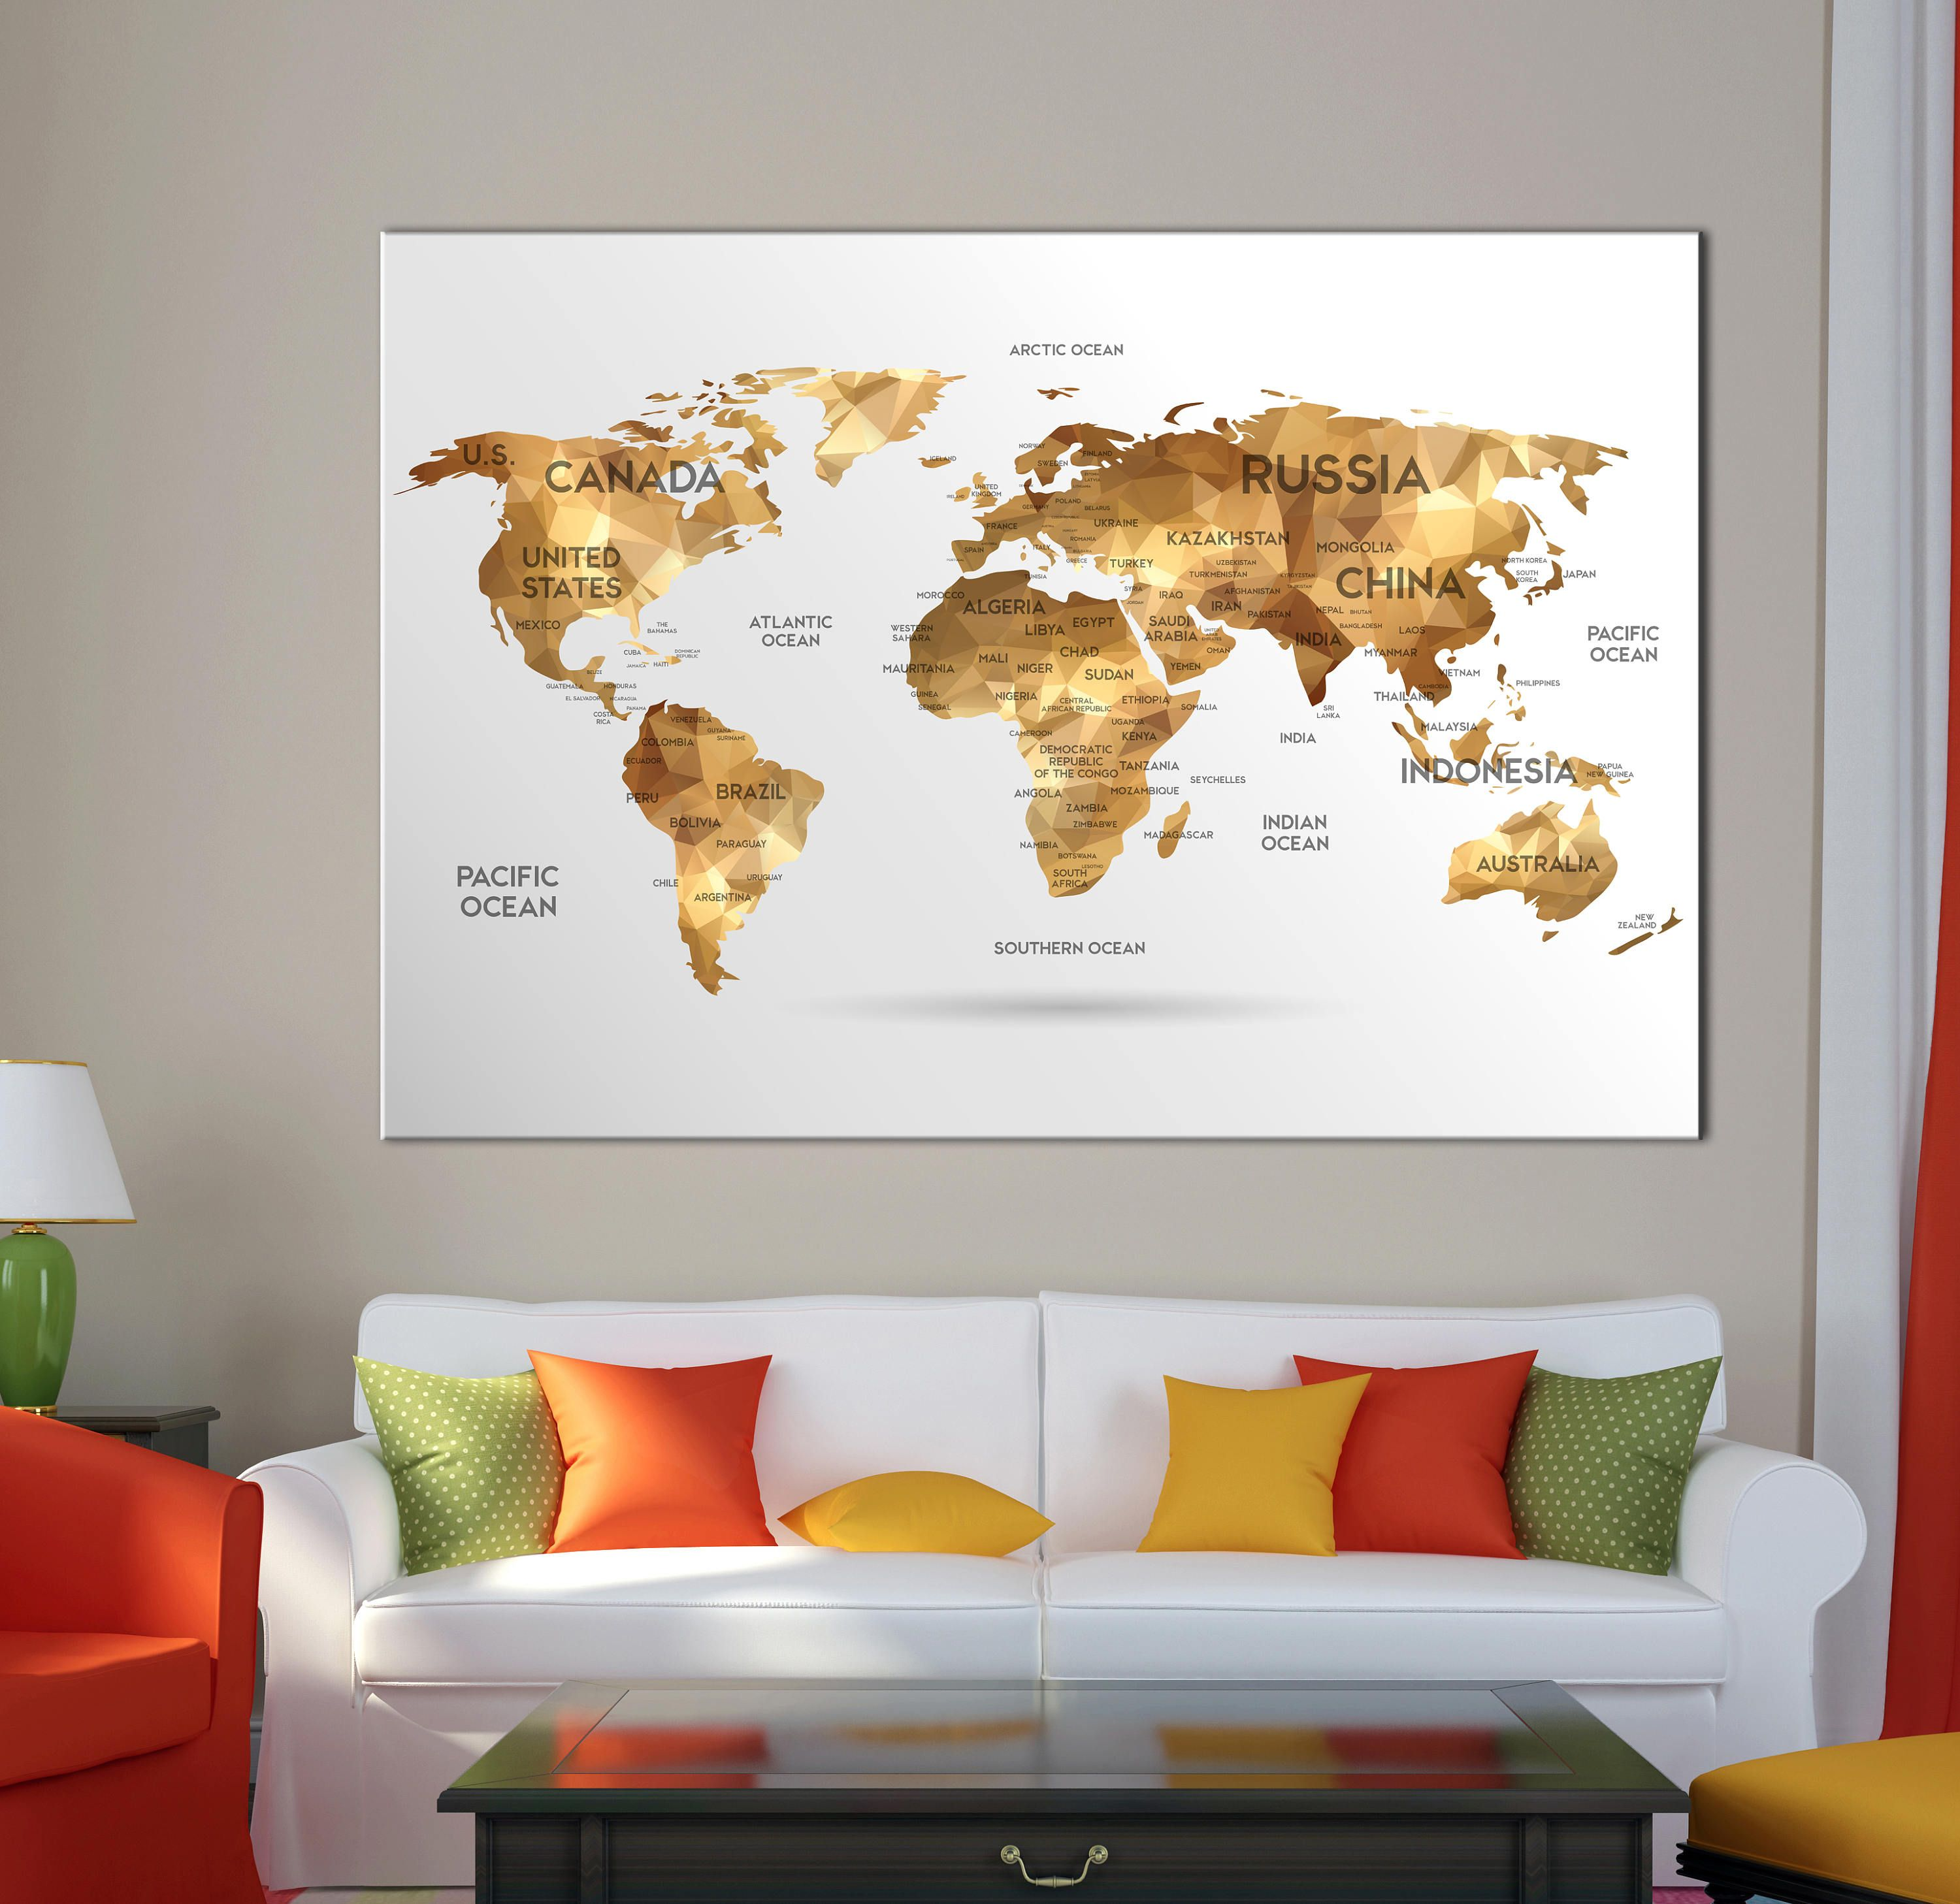 Large world map wall art with countries names canvas print extra large world map wall art with countries names canvas print extra large abstract world map home gumiabroncs Choice Image